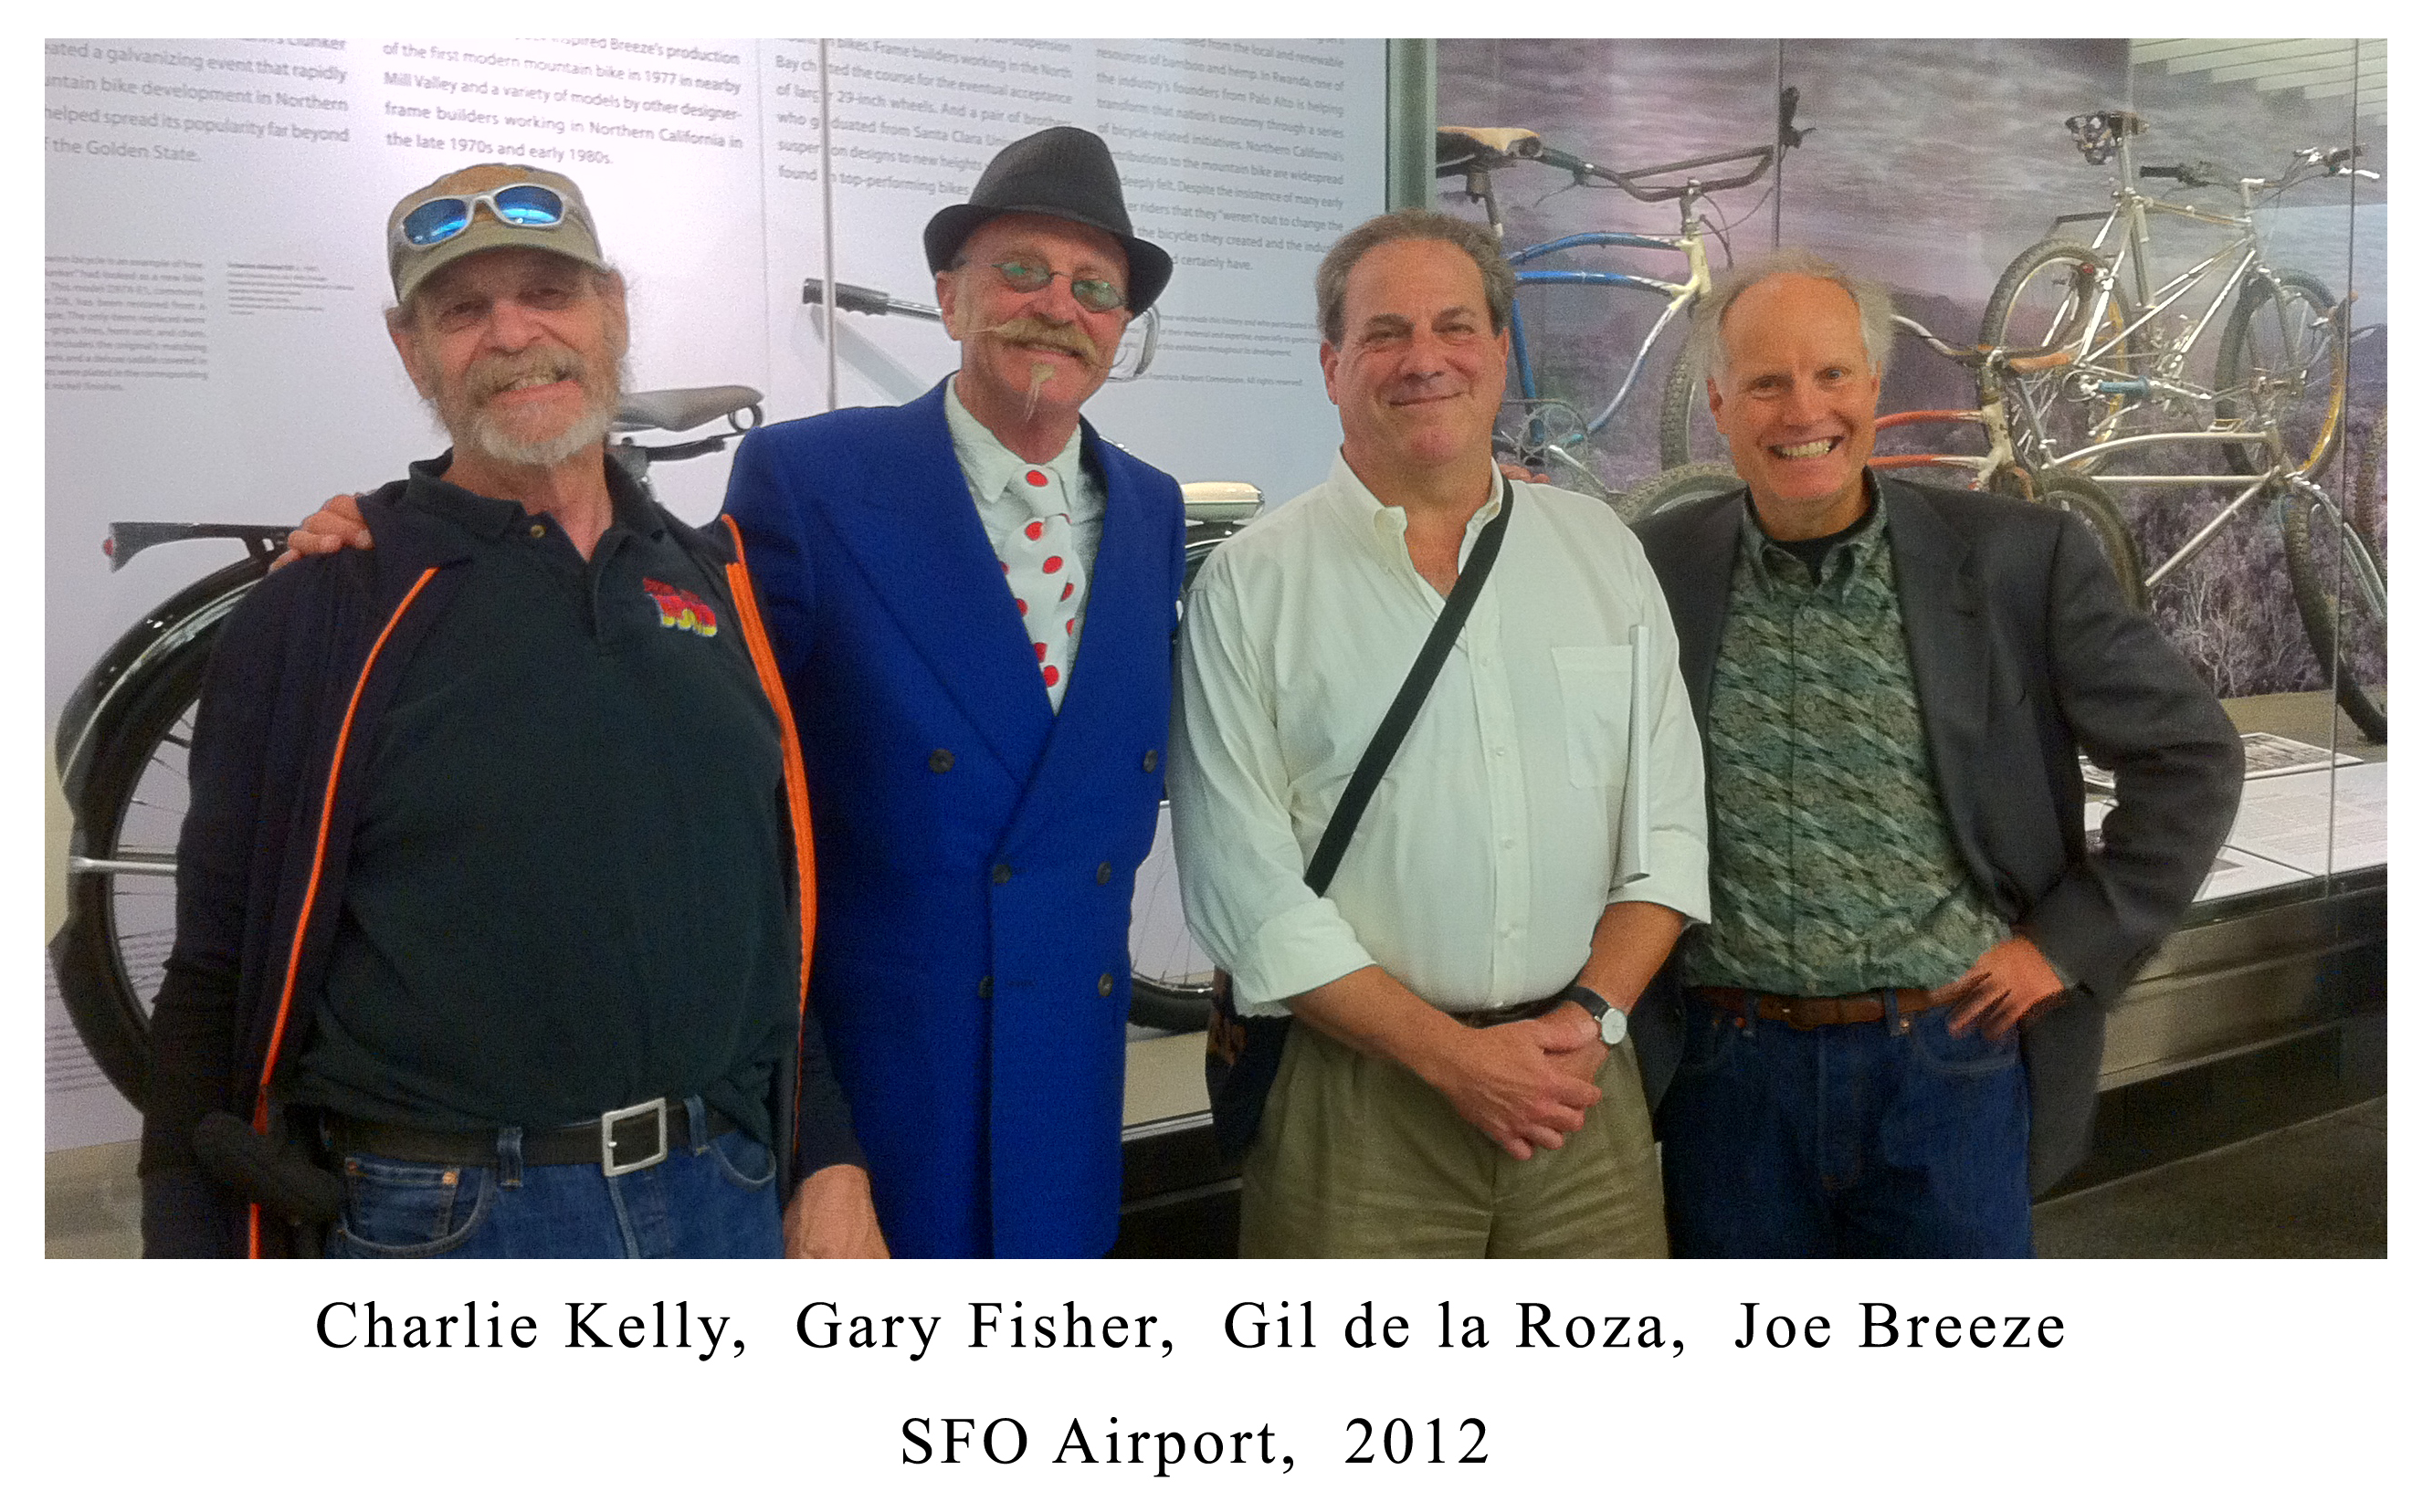 SFO pic [with text]